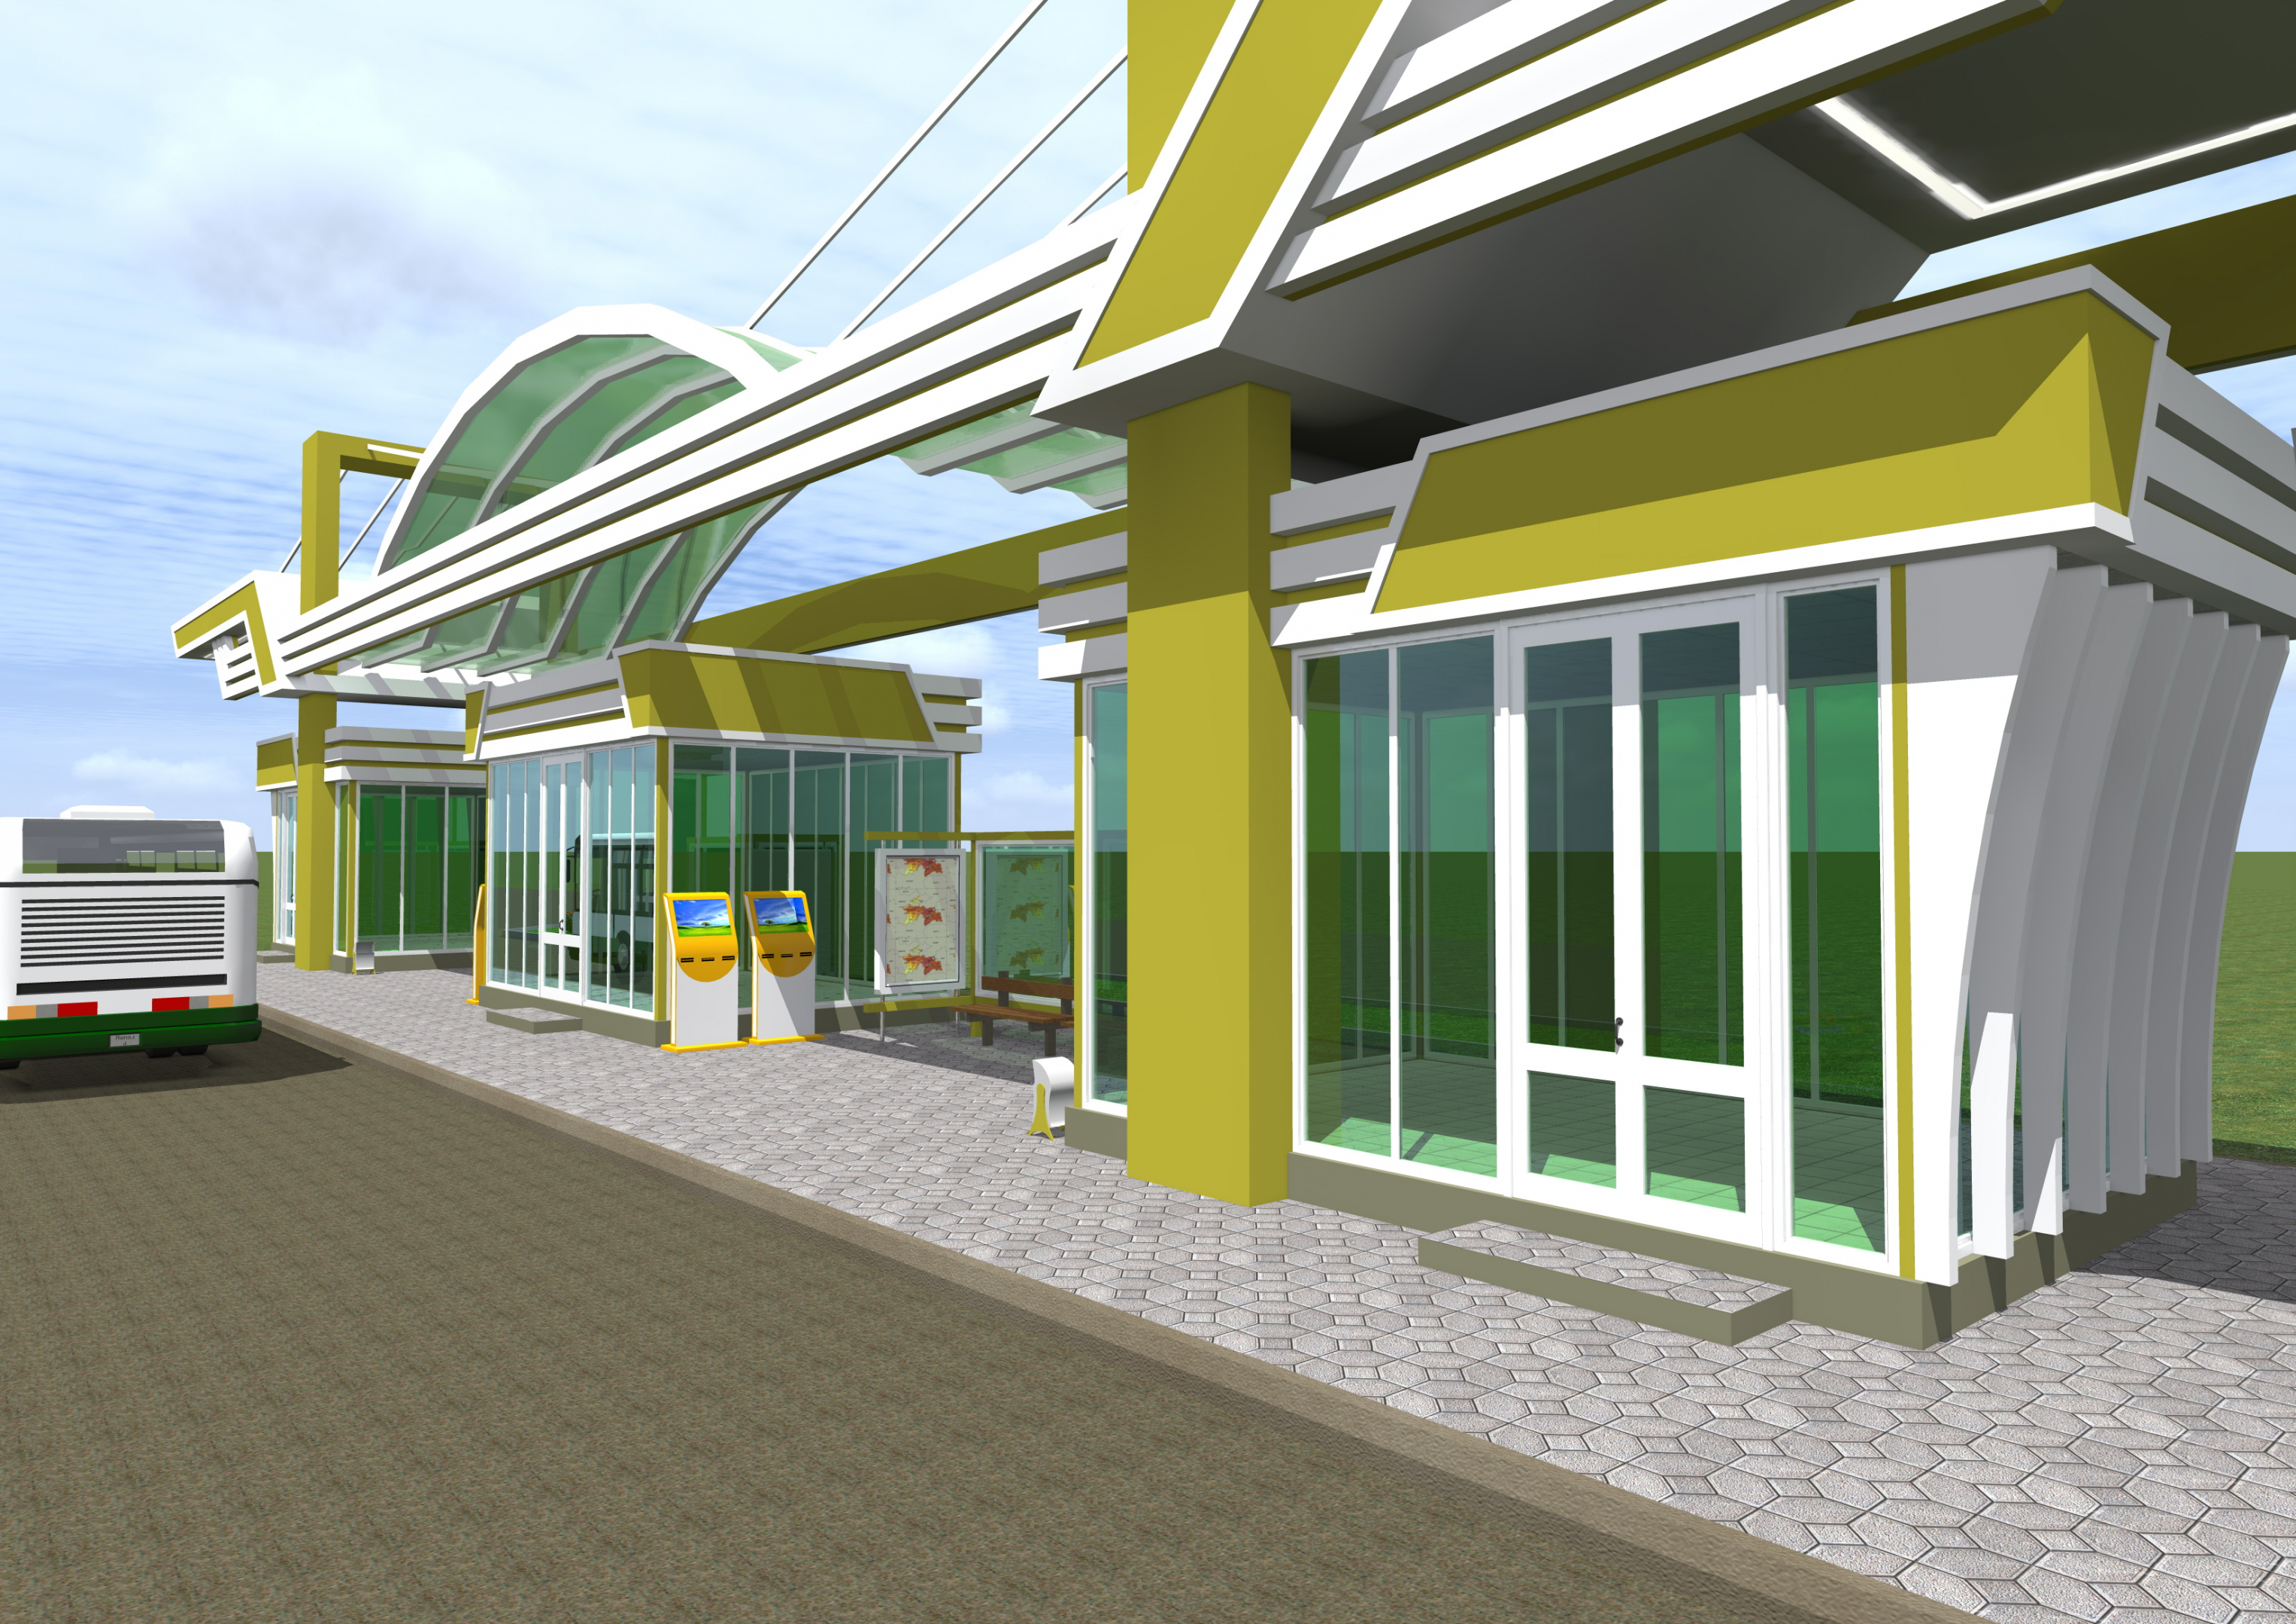 Public transport stop in ArchiCAD Other image